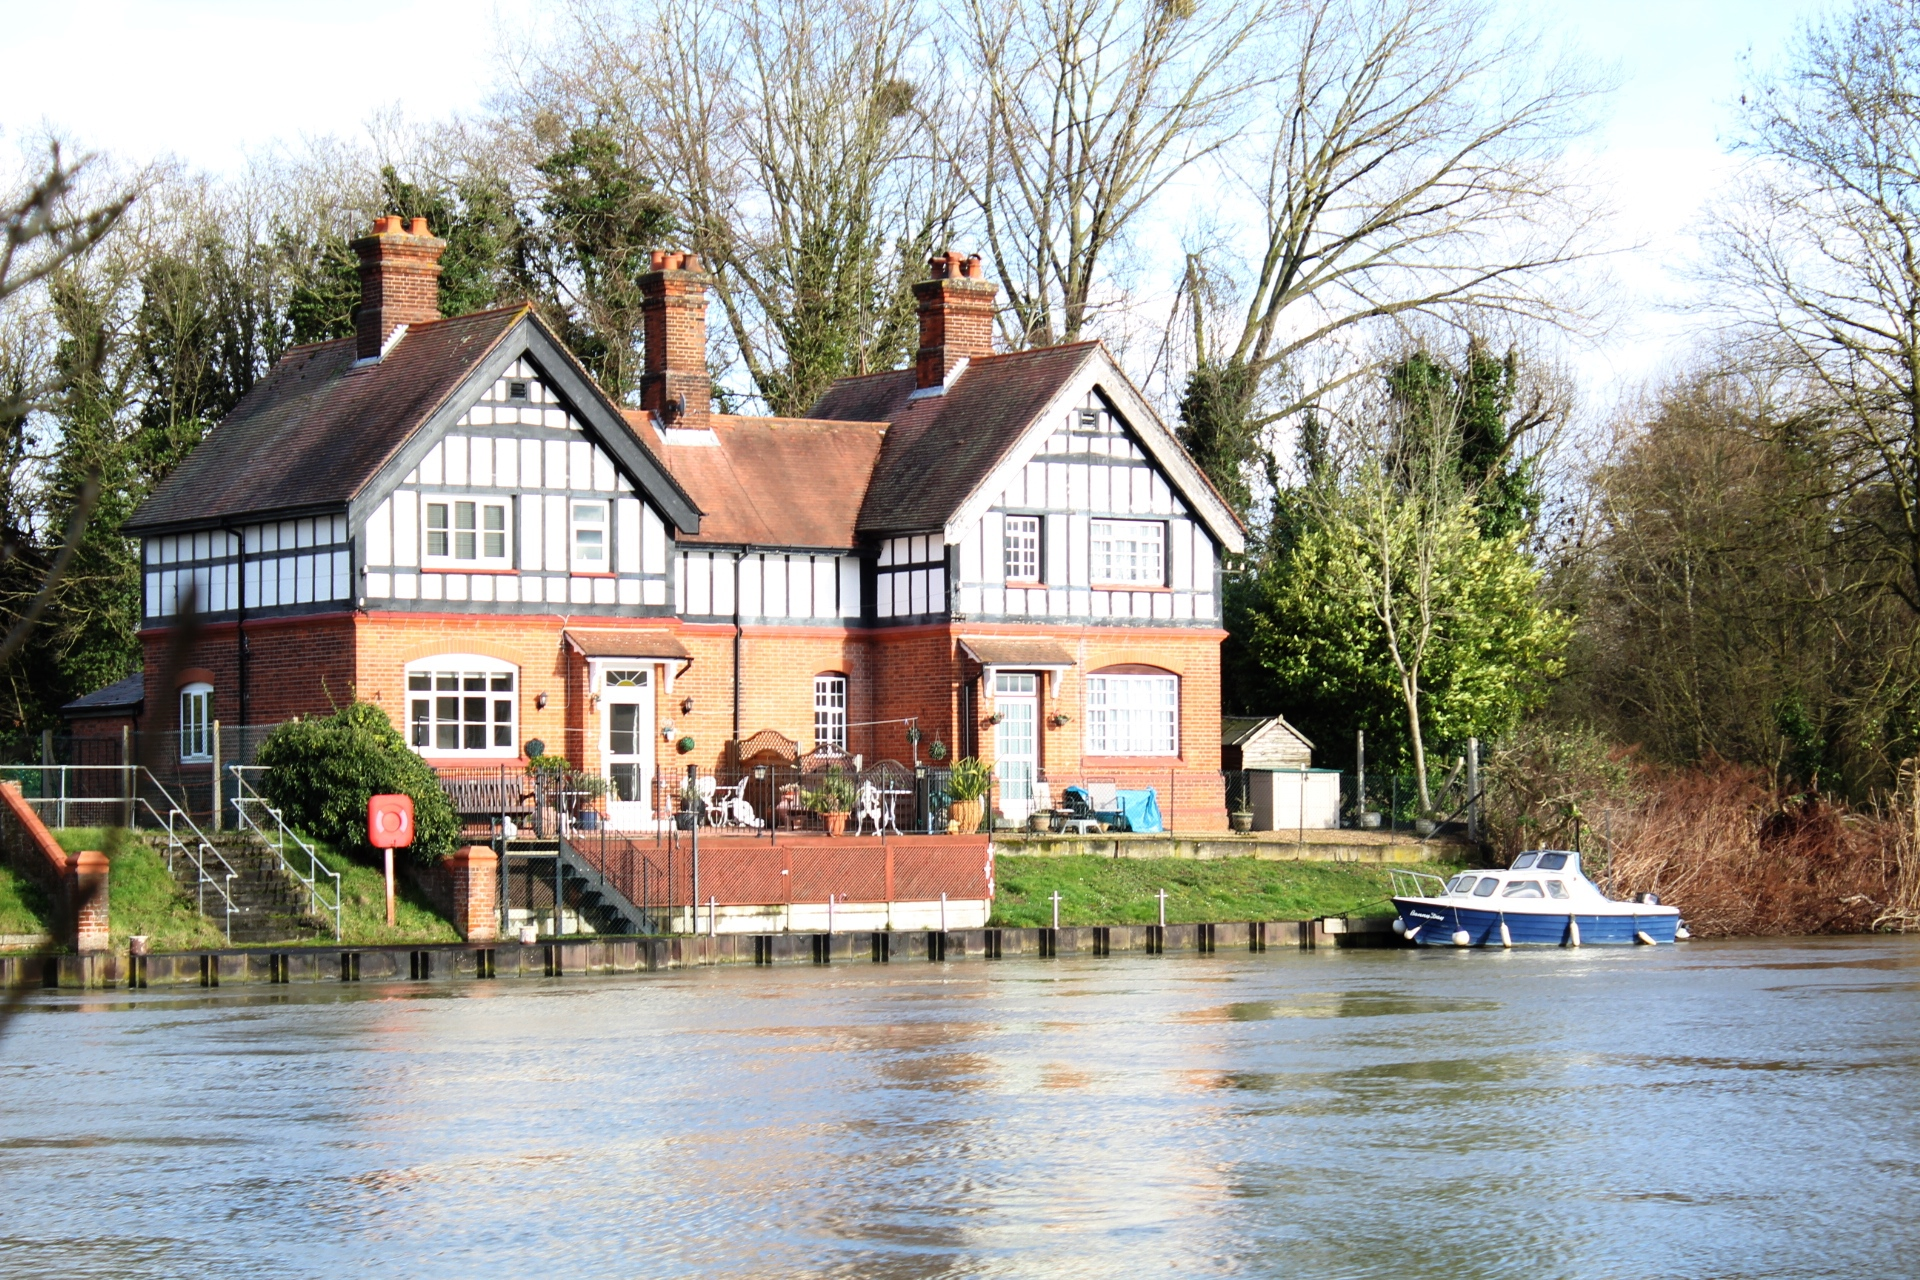 surrey character house on the river.jpg